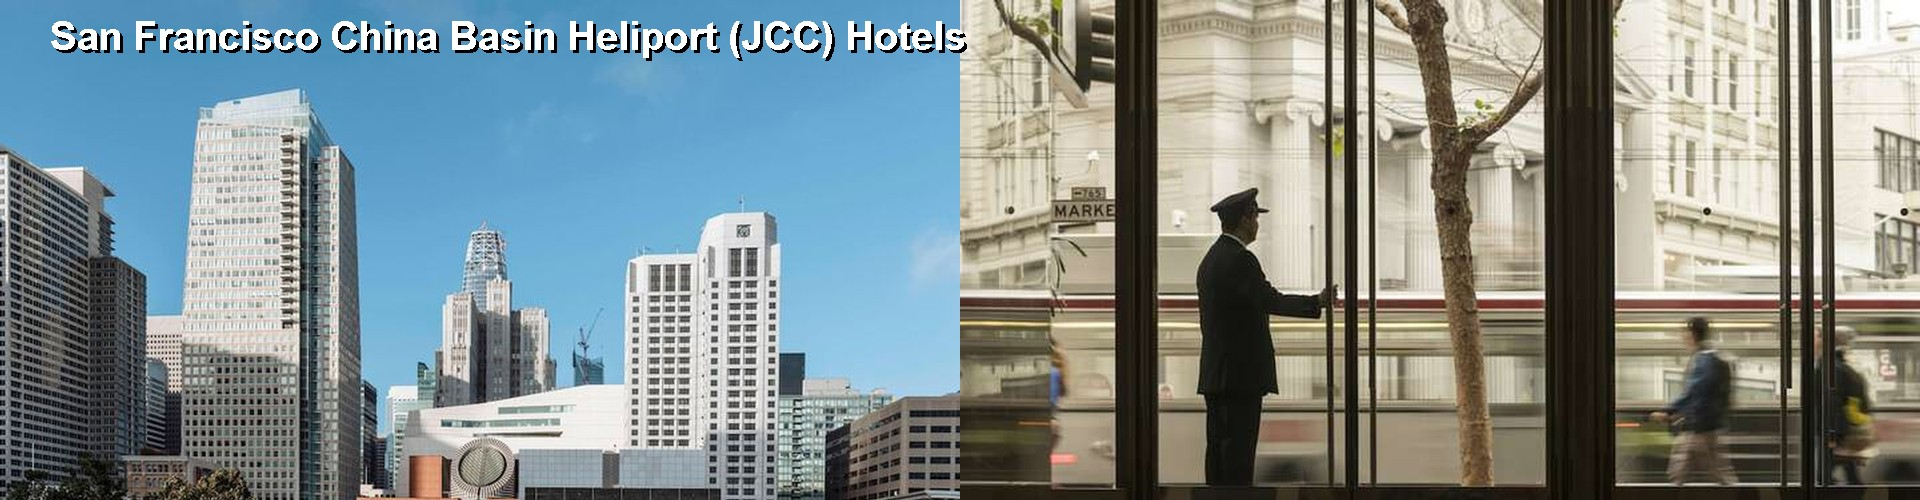 3 Best Hotels near San Francisco China Basin Heliport (JCC)